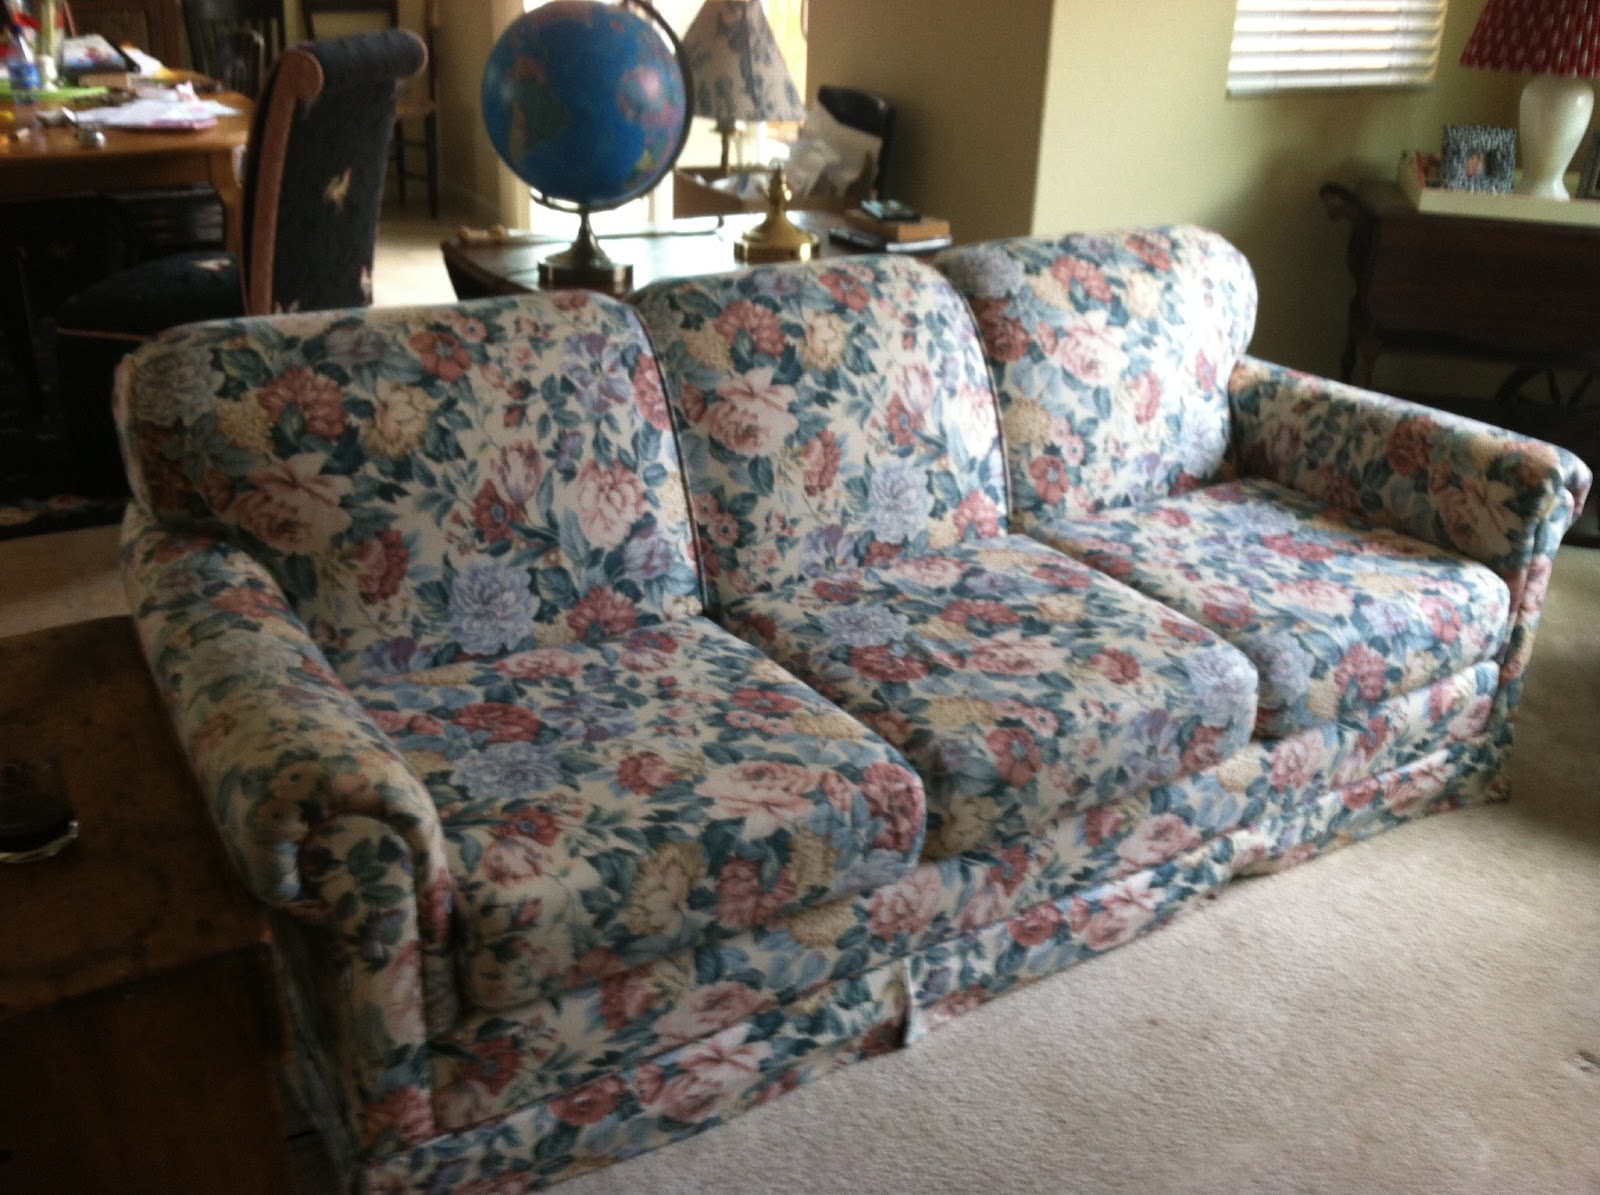 Goosegirl sews: The New Slipcover For the Old Ugly Sofa- Part 1